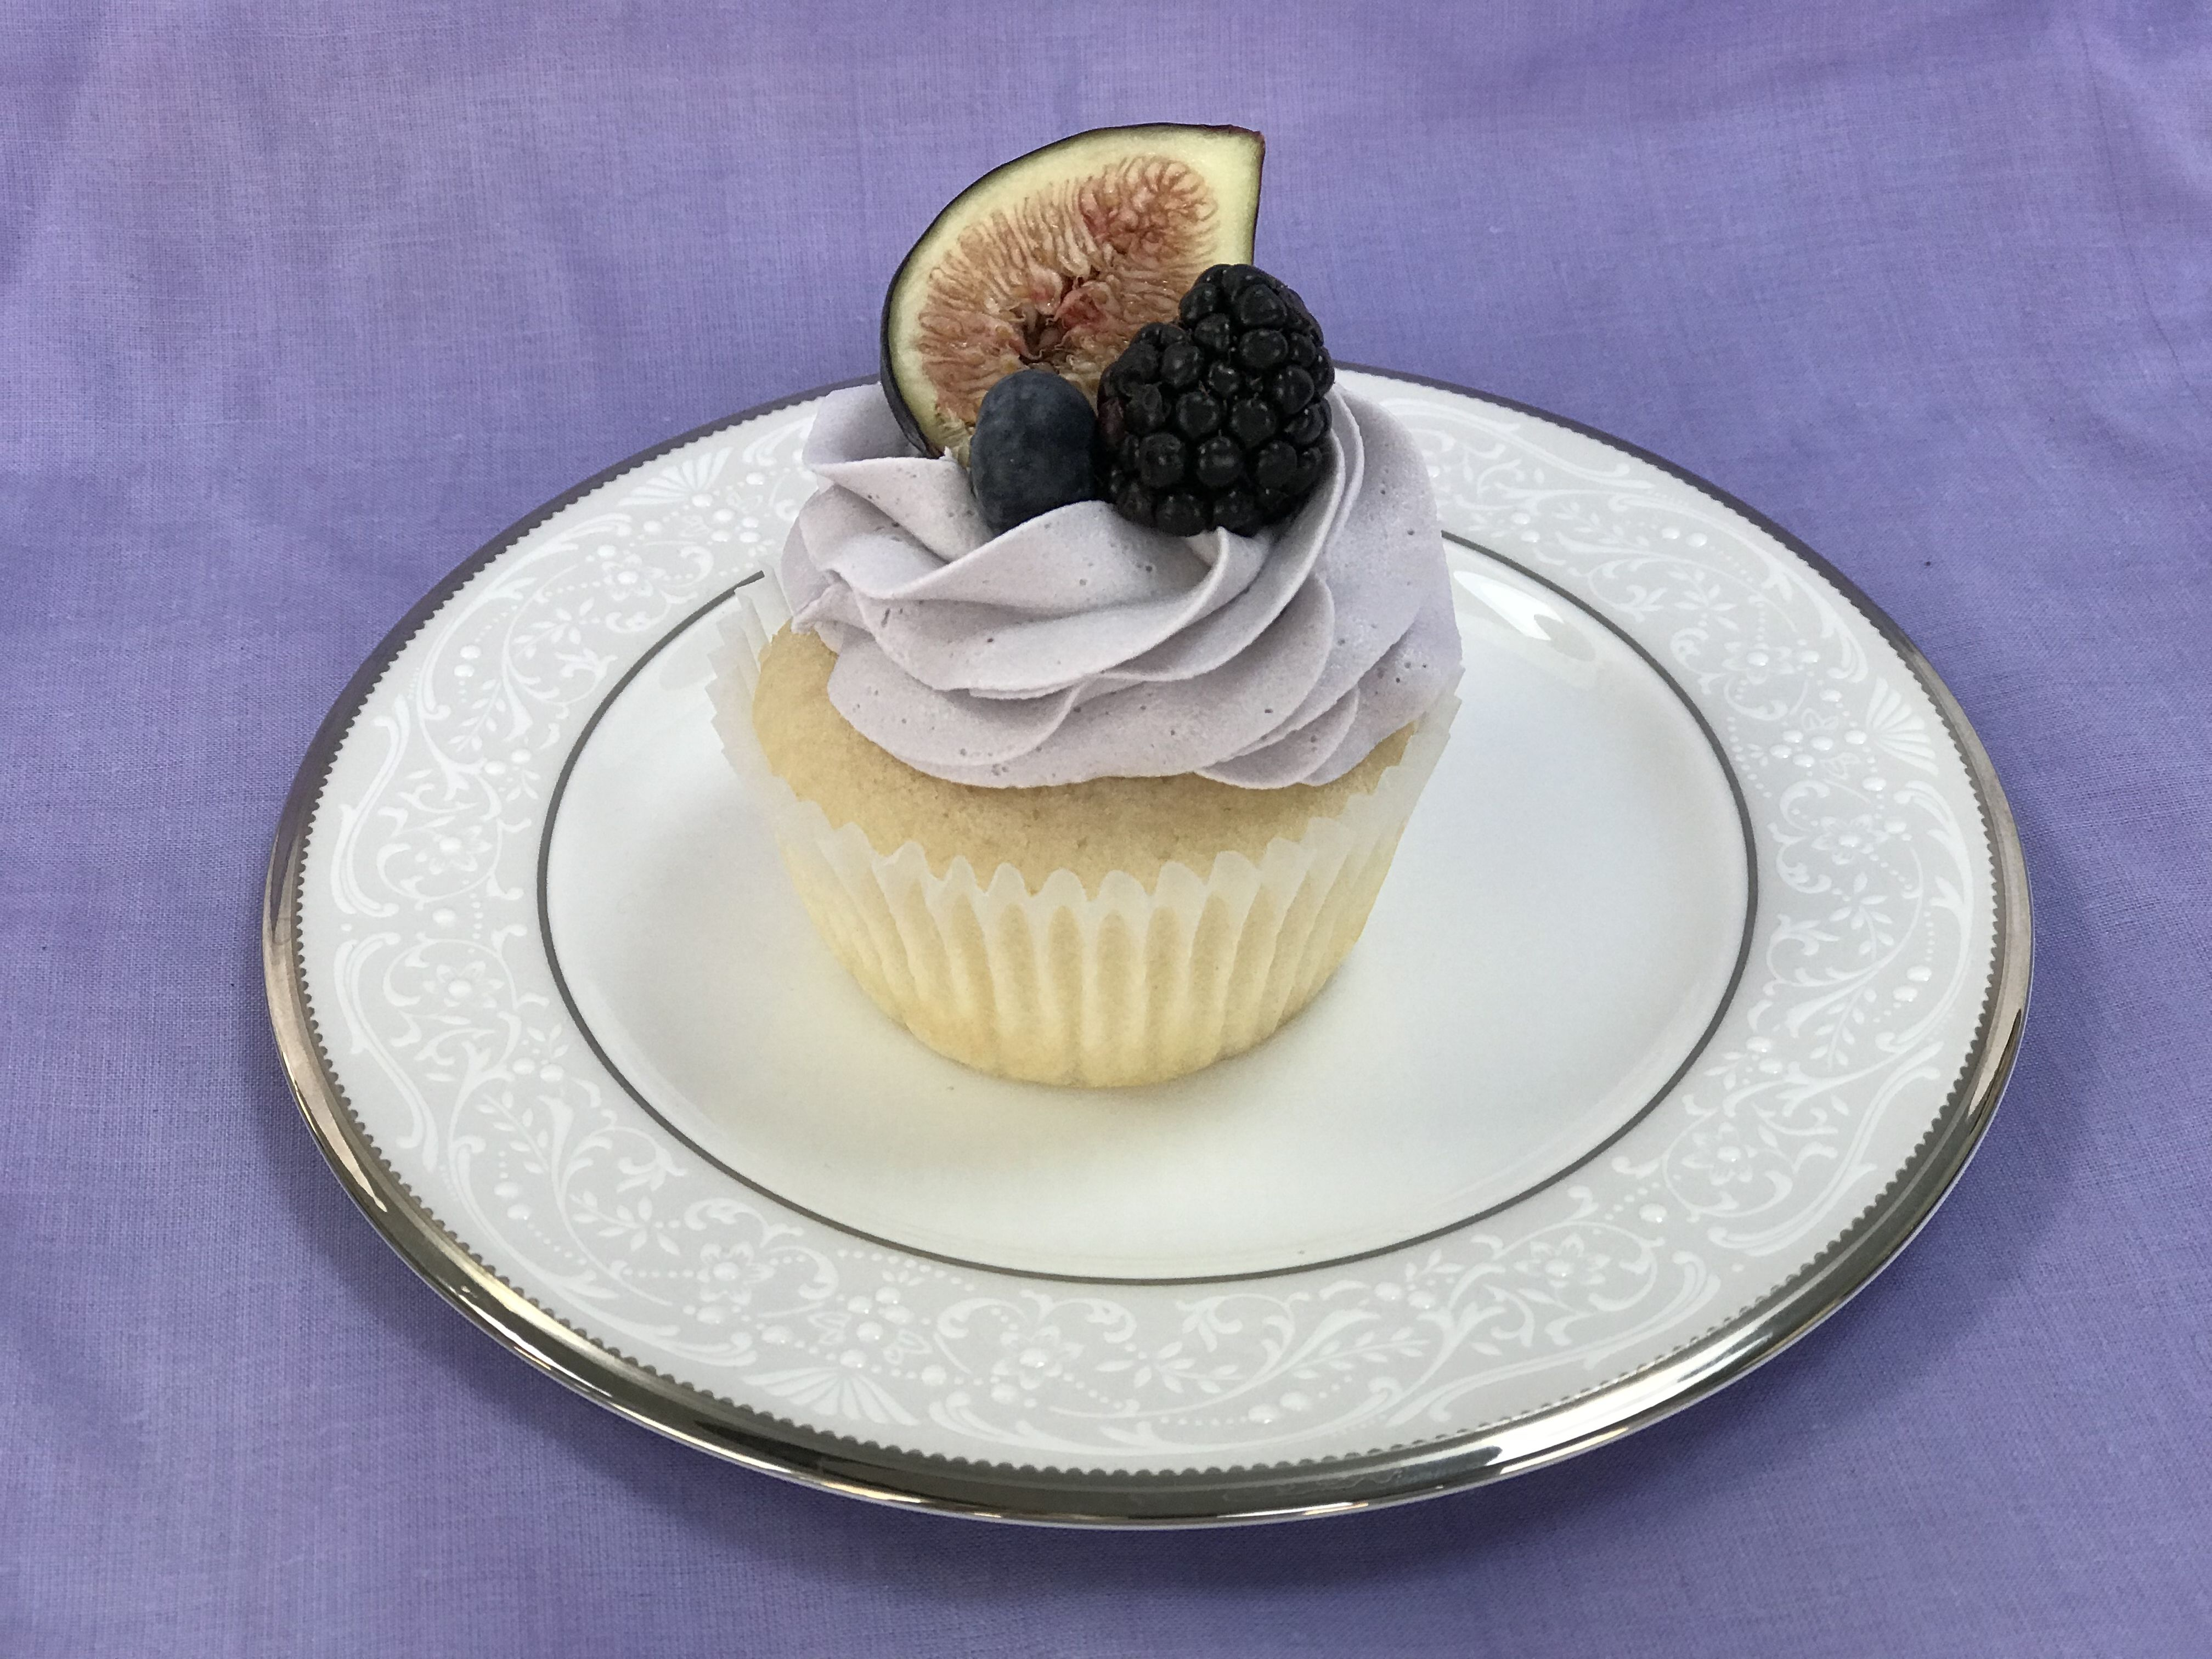 Sophisticated dessert for the grown up cupcake fan Adult